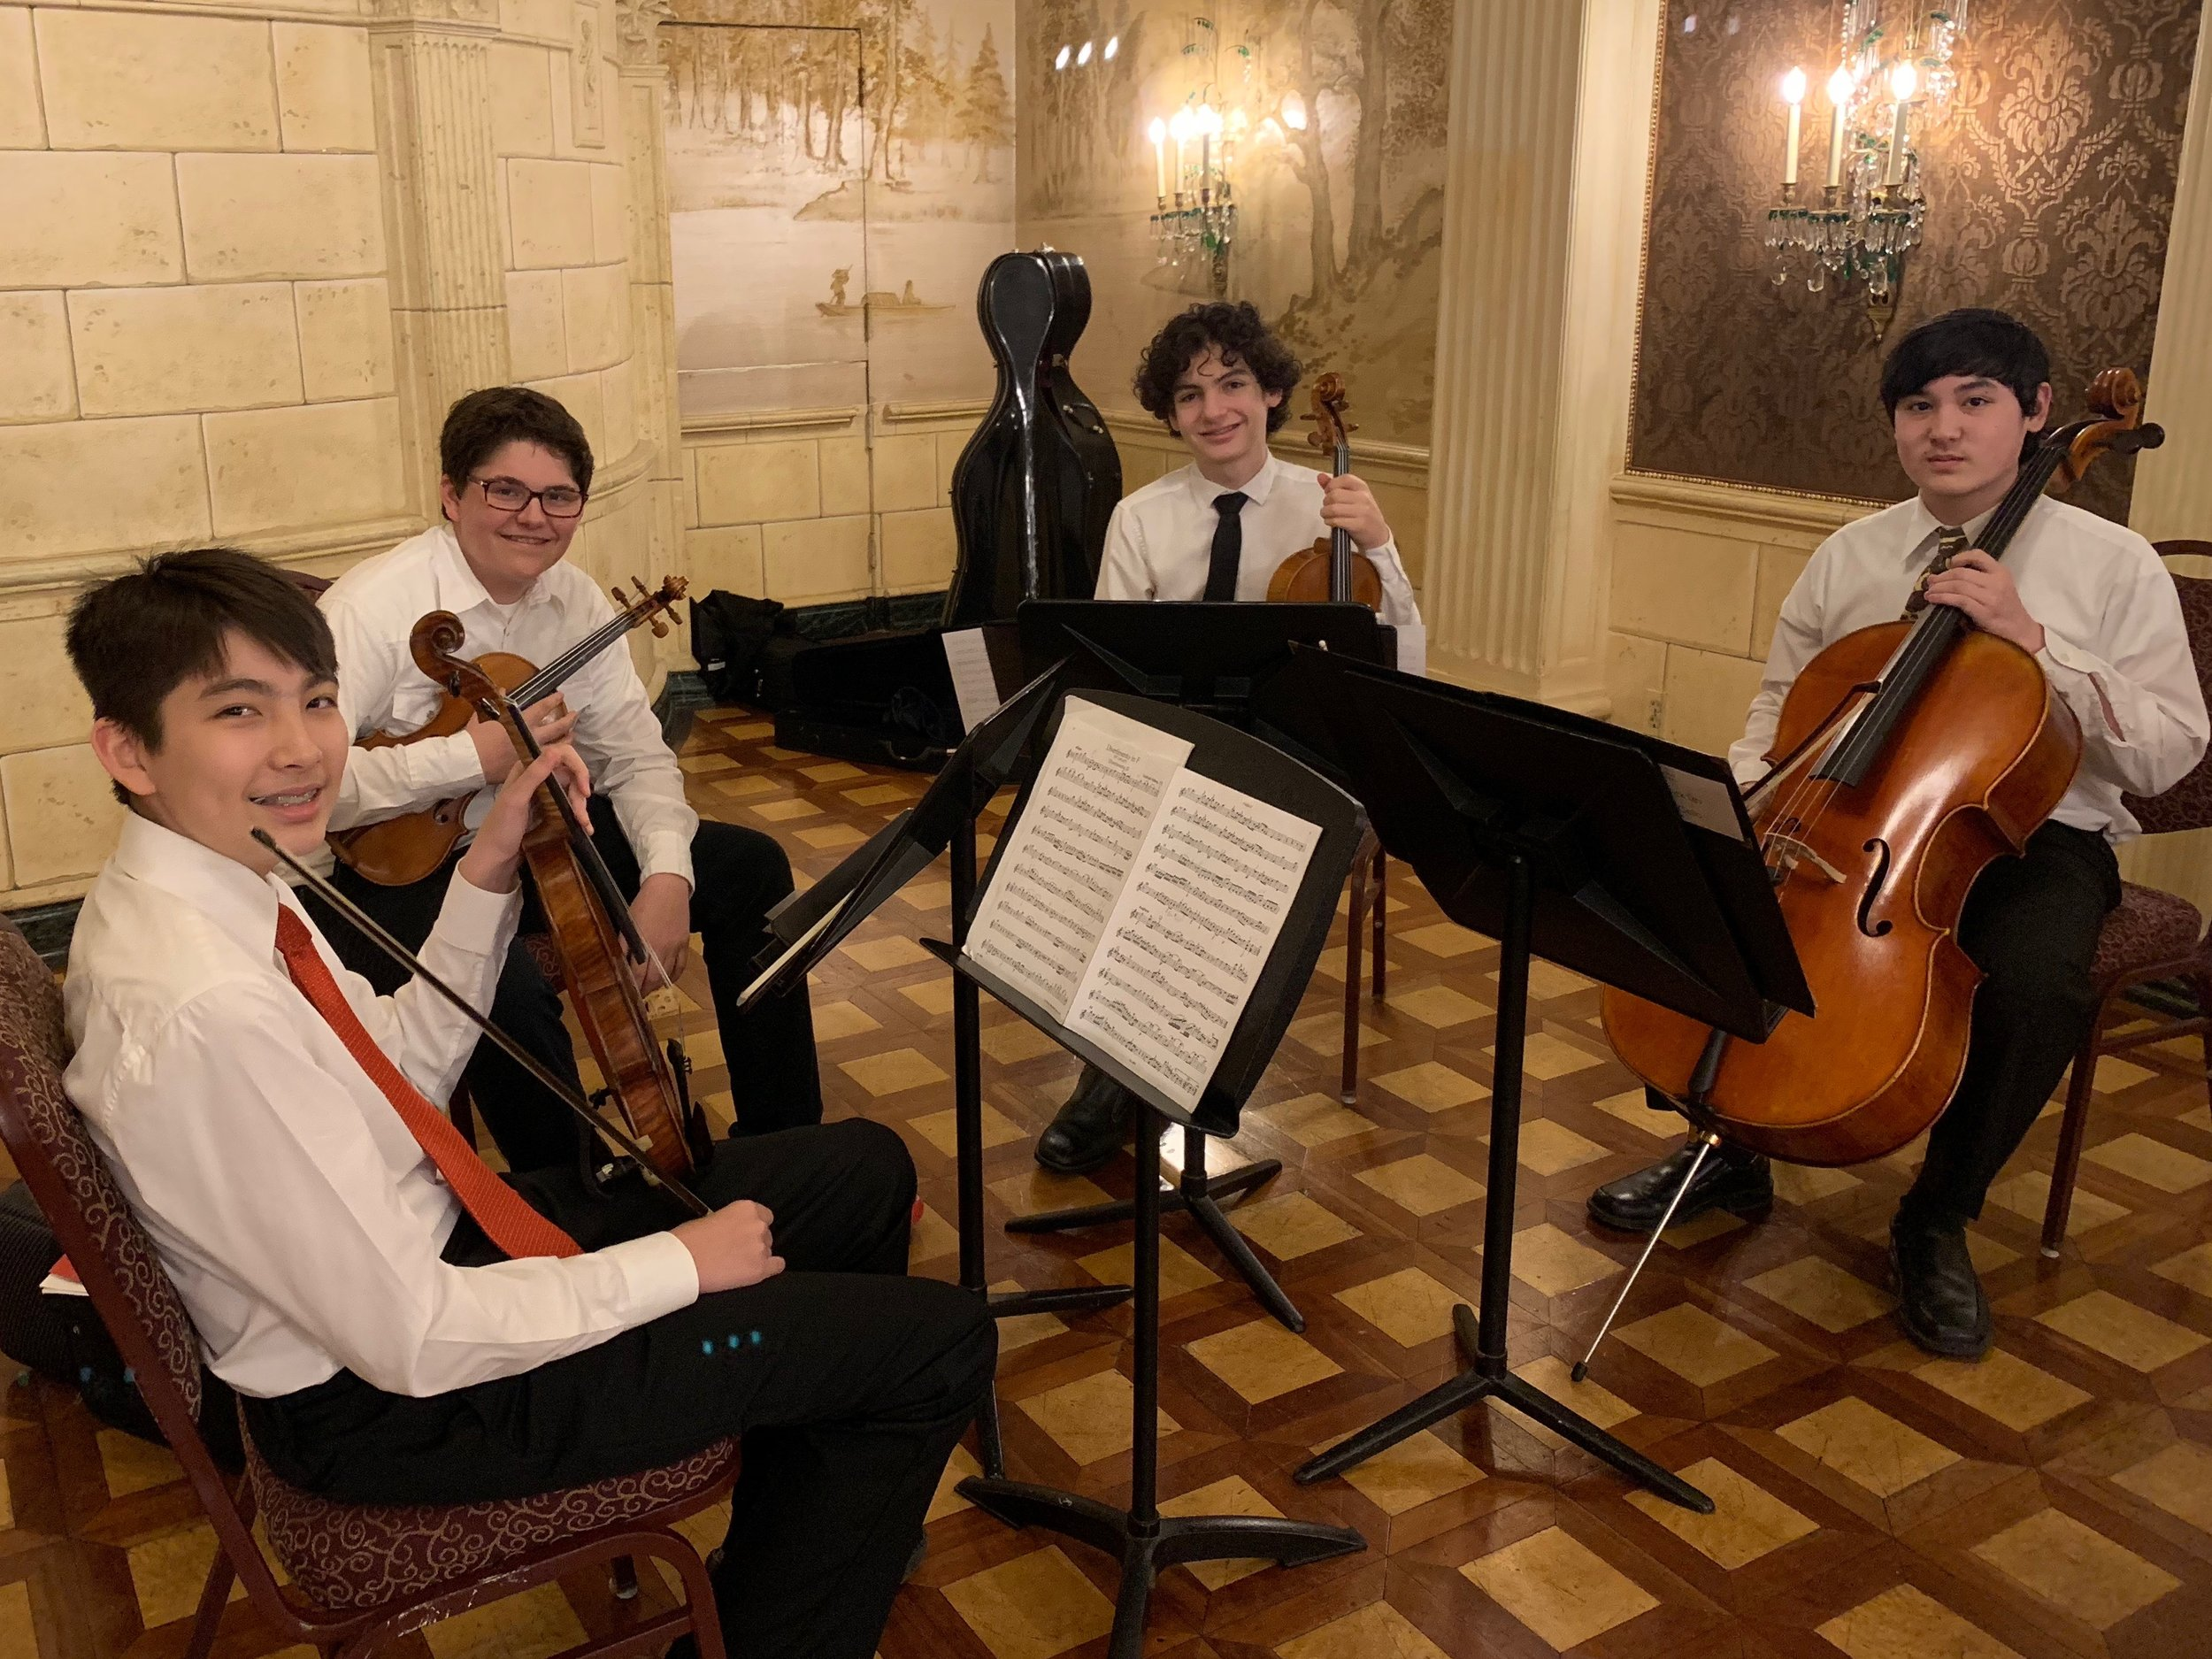 Steinberg Society - Sunday, April 27, 2019The UpBeat Quartet - Harry, Hector, Jonah, and Nick - all members of the Three Rivers Young Peoples Orchestra, performed for the Steinberg Society in the Mozart Room at Heinz Hall for the Performing Arts.